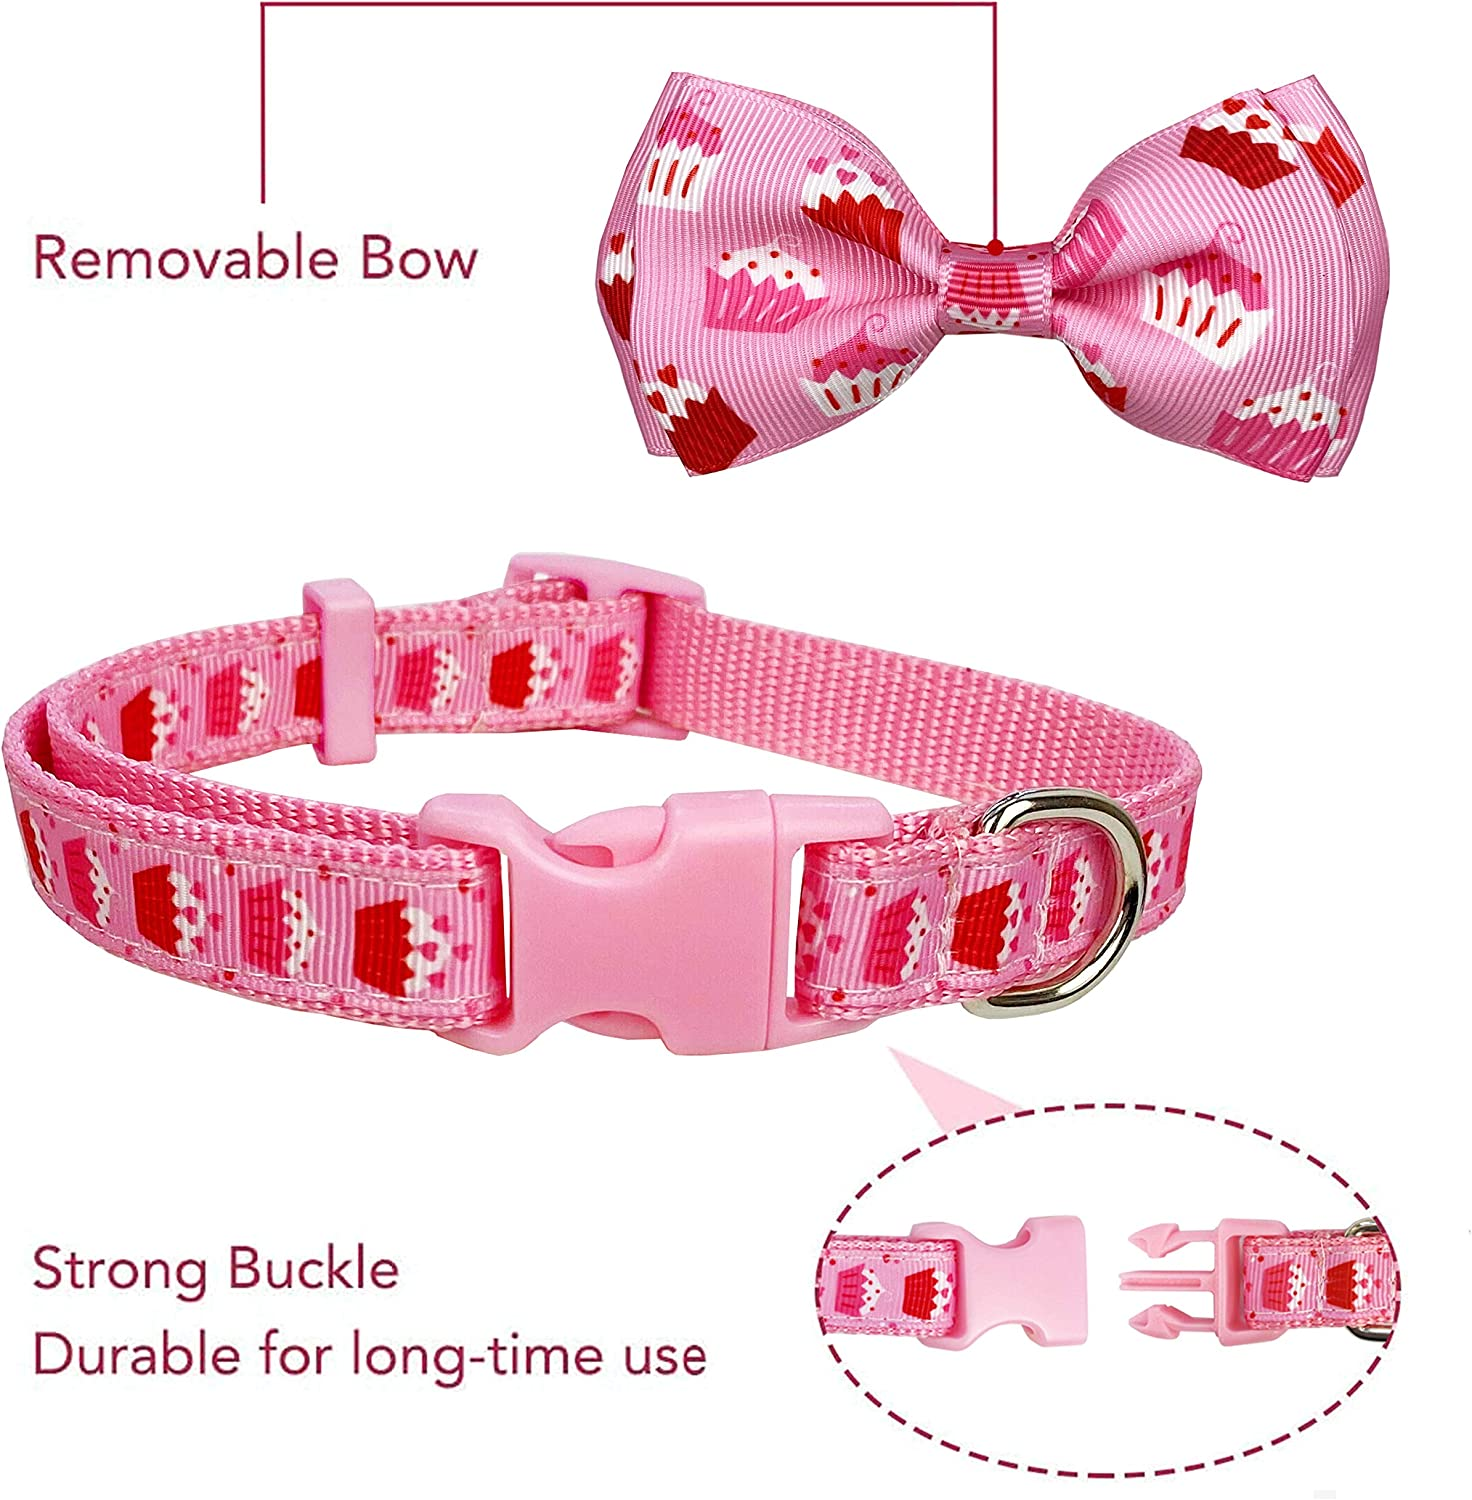 Neck 5//8 Wide Holiday Cute Cake Collar for Small Dogs Puppy Pets. Hey Cupcake, Small- Pohshido 2 Pack Valentines Birthday Dog Collar with Bow Tie 11-17